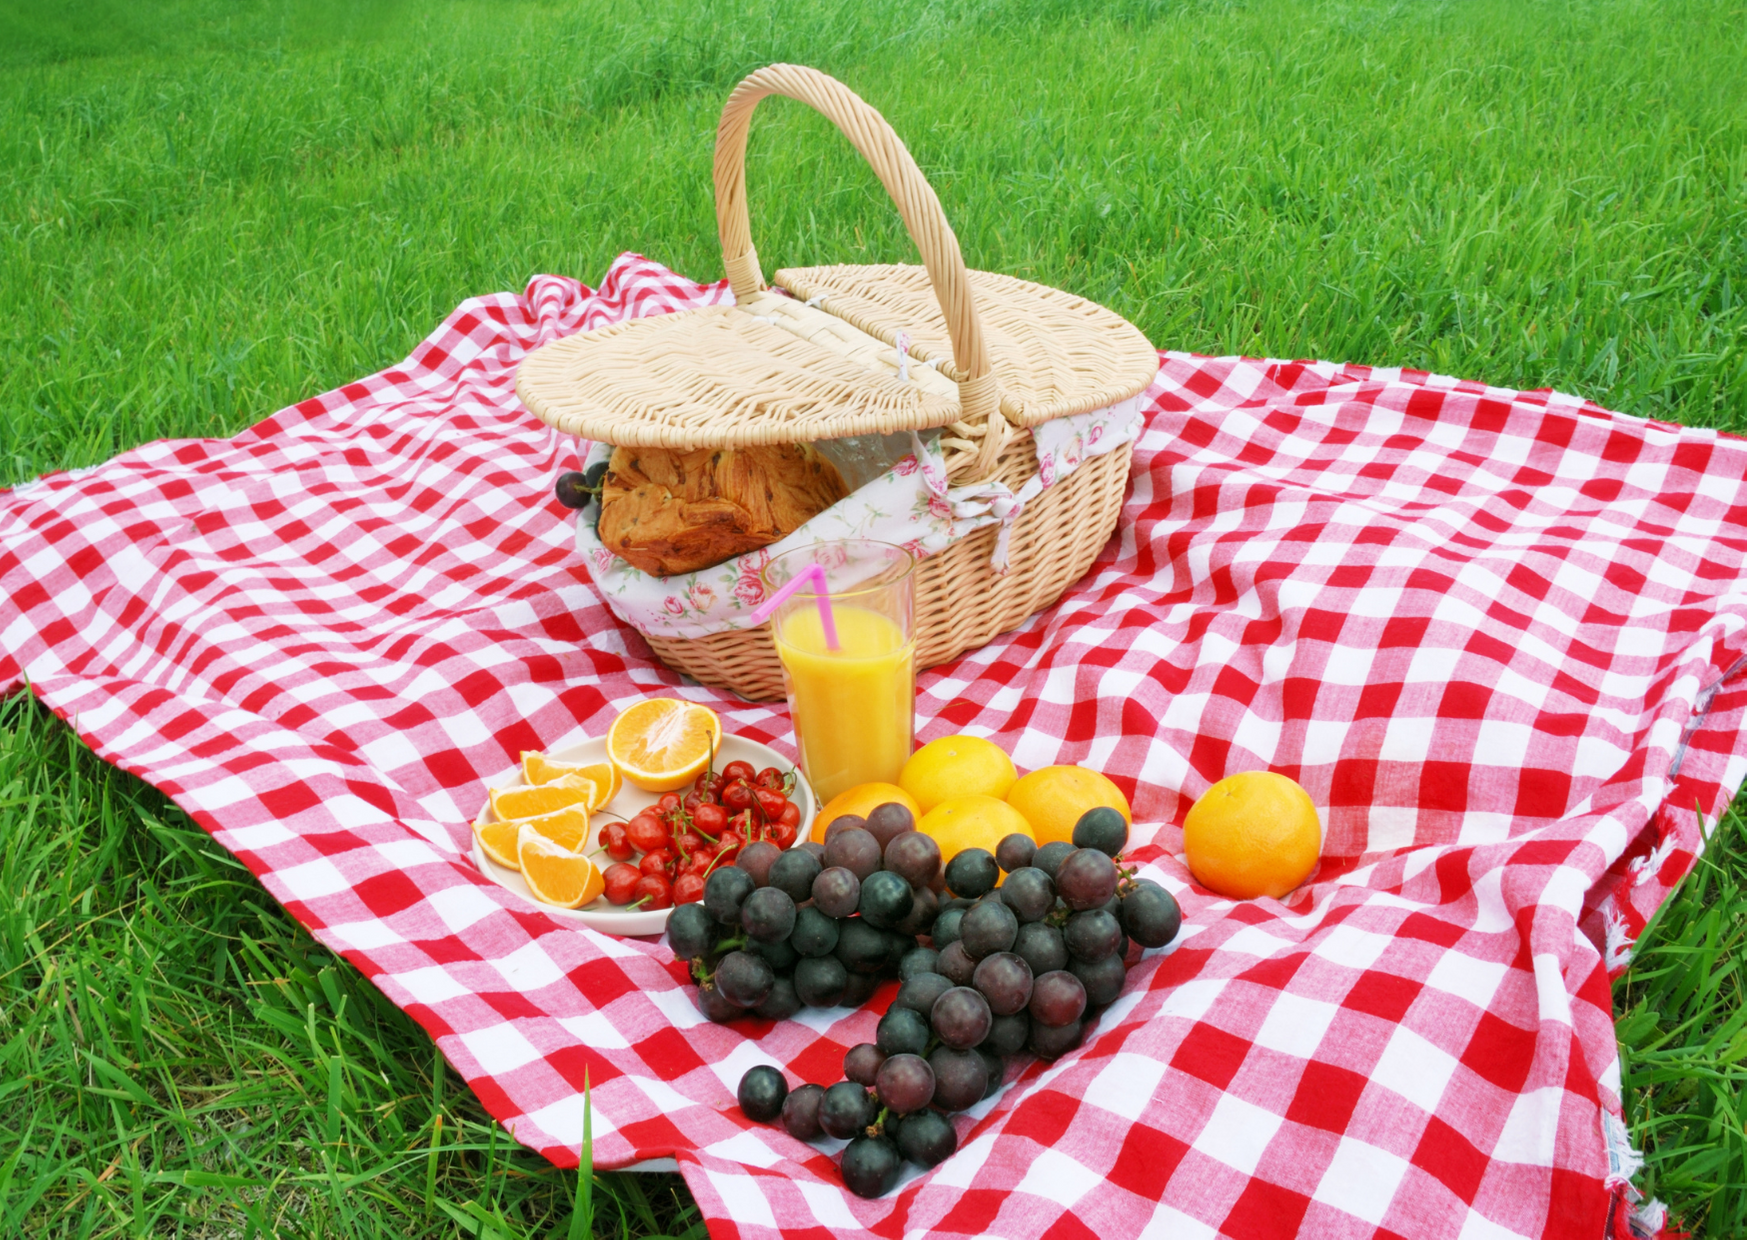 photo of a picnic blanket with fruits